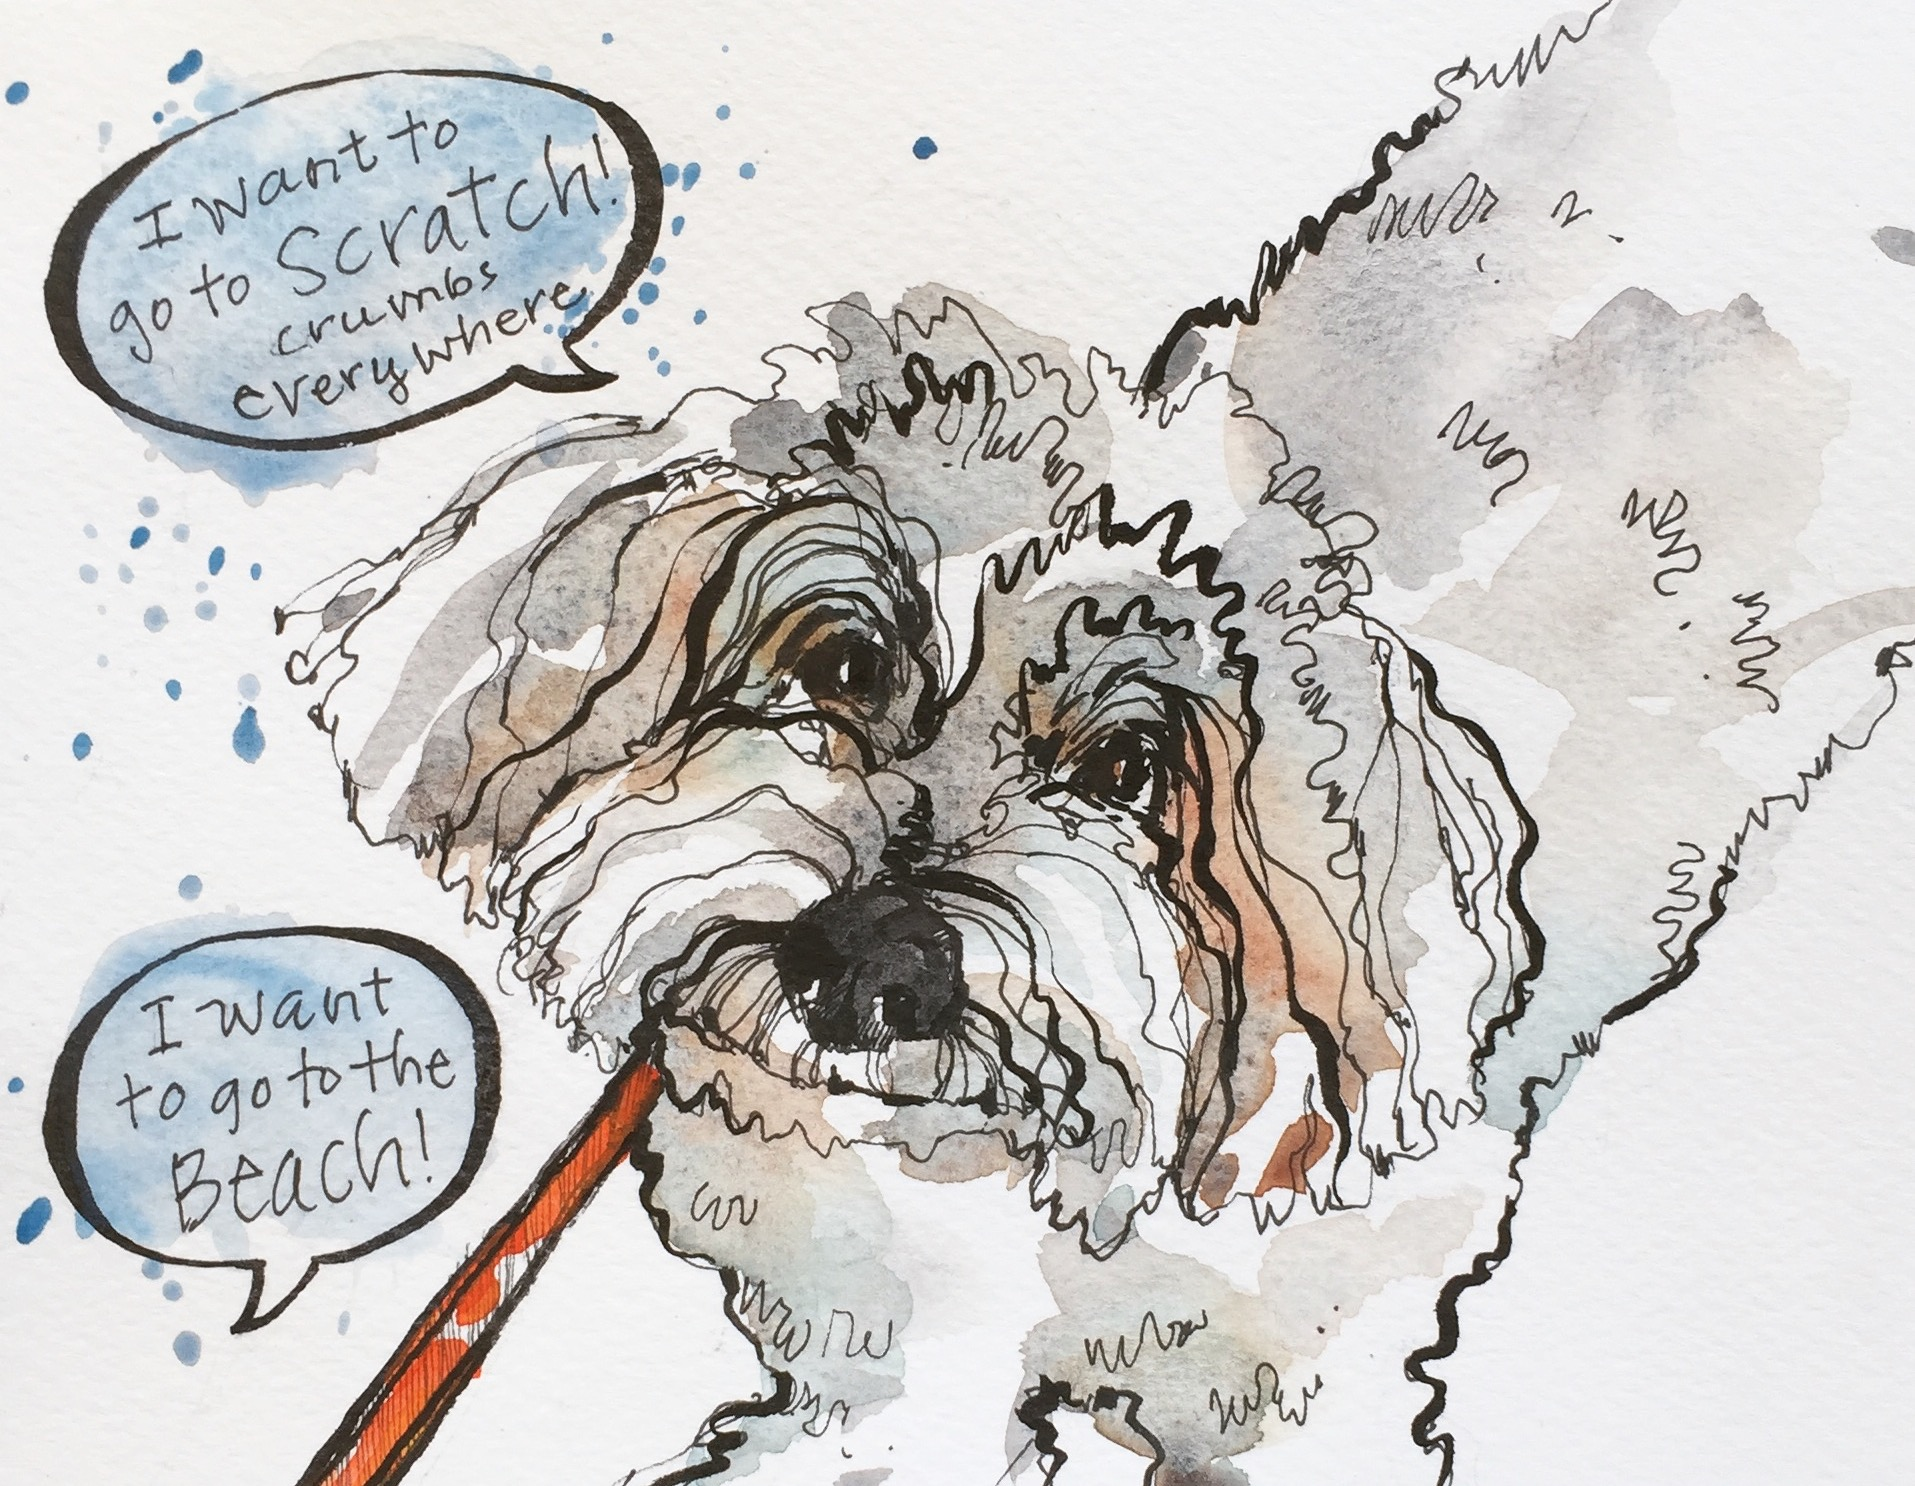 """It is embarrassing as I drag all of Sophie's 13 lbs straining on her leash with little claws gripping onto the bricks to find that one tasty dropped morsel. The wonderful Scratch Bakery is a dog owners nemesis. Once I watched a guy have to pick up his 90 lb chocolate lab and carry the dog away from the """"crumb-fest"""". #sketchbook #penandink #watercolor #illustration #instadraw #instaart #bakery #willardbeach #maine #ilovemydog"""